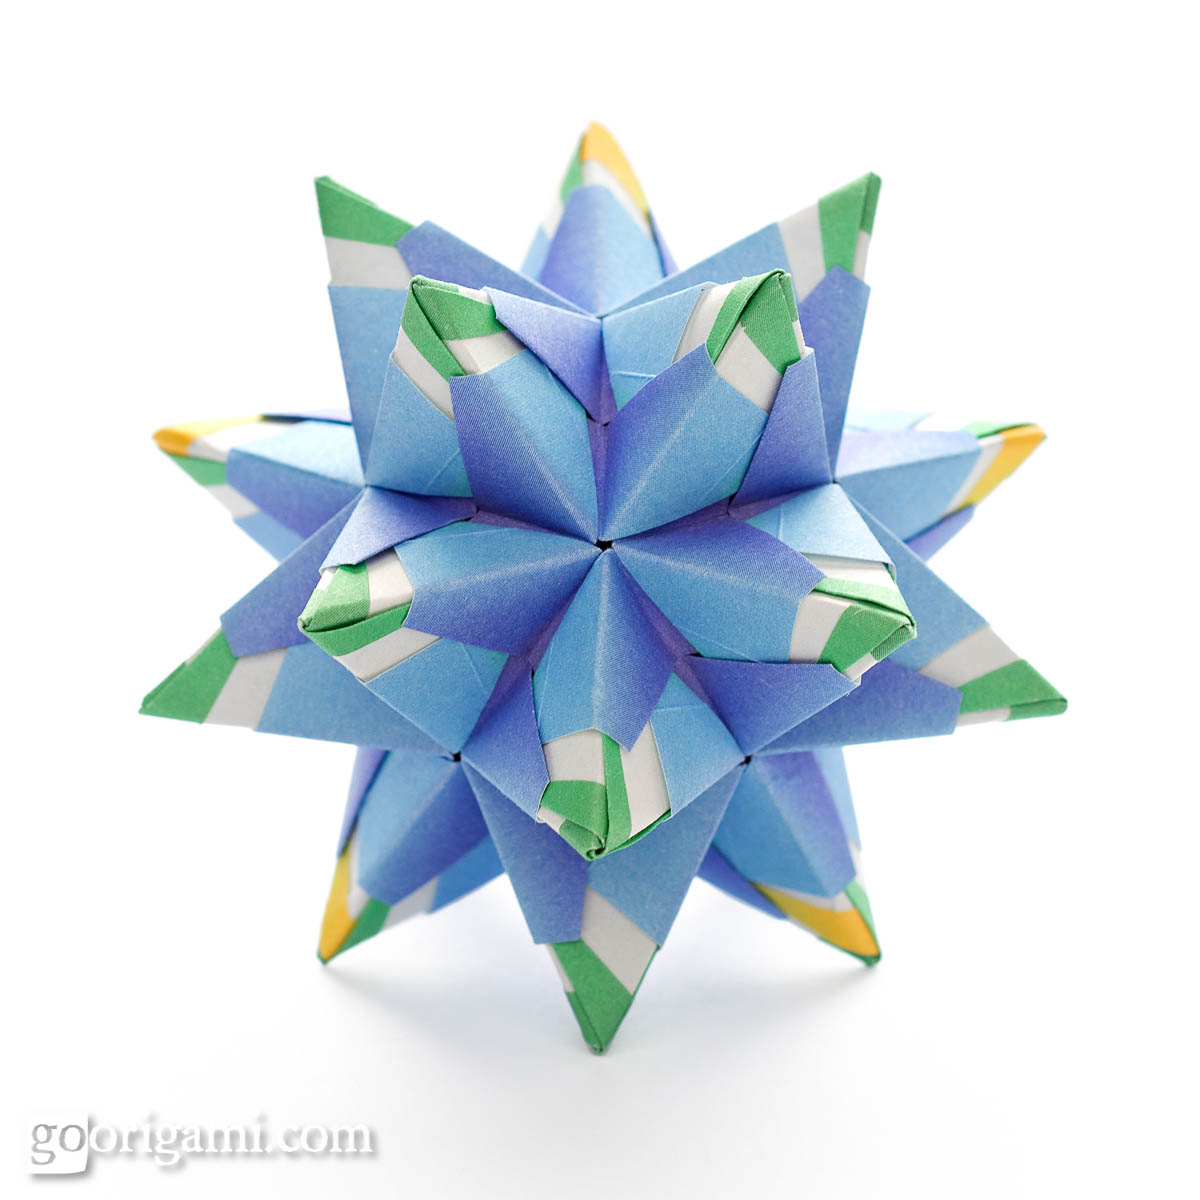 origami flower diagram in english tekonsha prodigy p3 brake controller wiring chandelle kusudama by maria sinayskaya  go